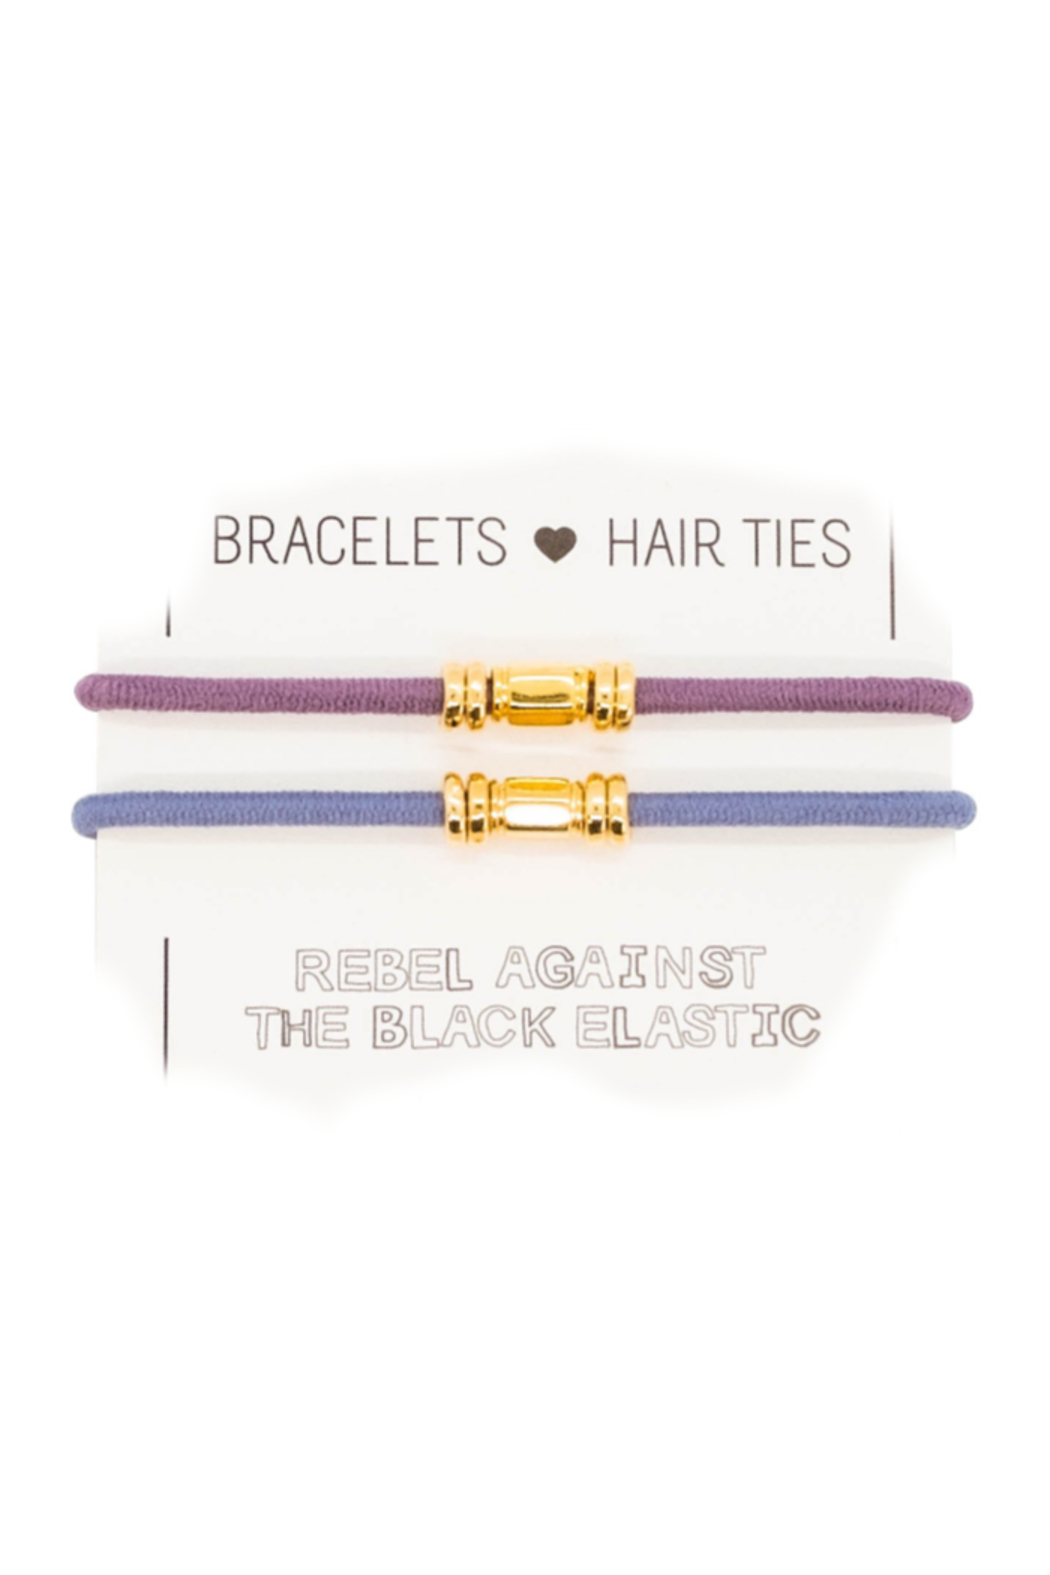 The Birds Nest GOLD BARRE HAIR TIES/BRACELETS (SET 2) - Front Cropped Image